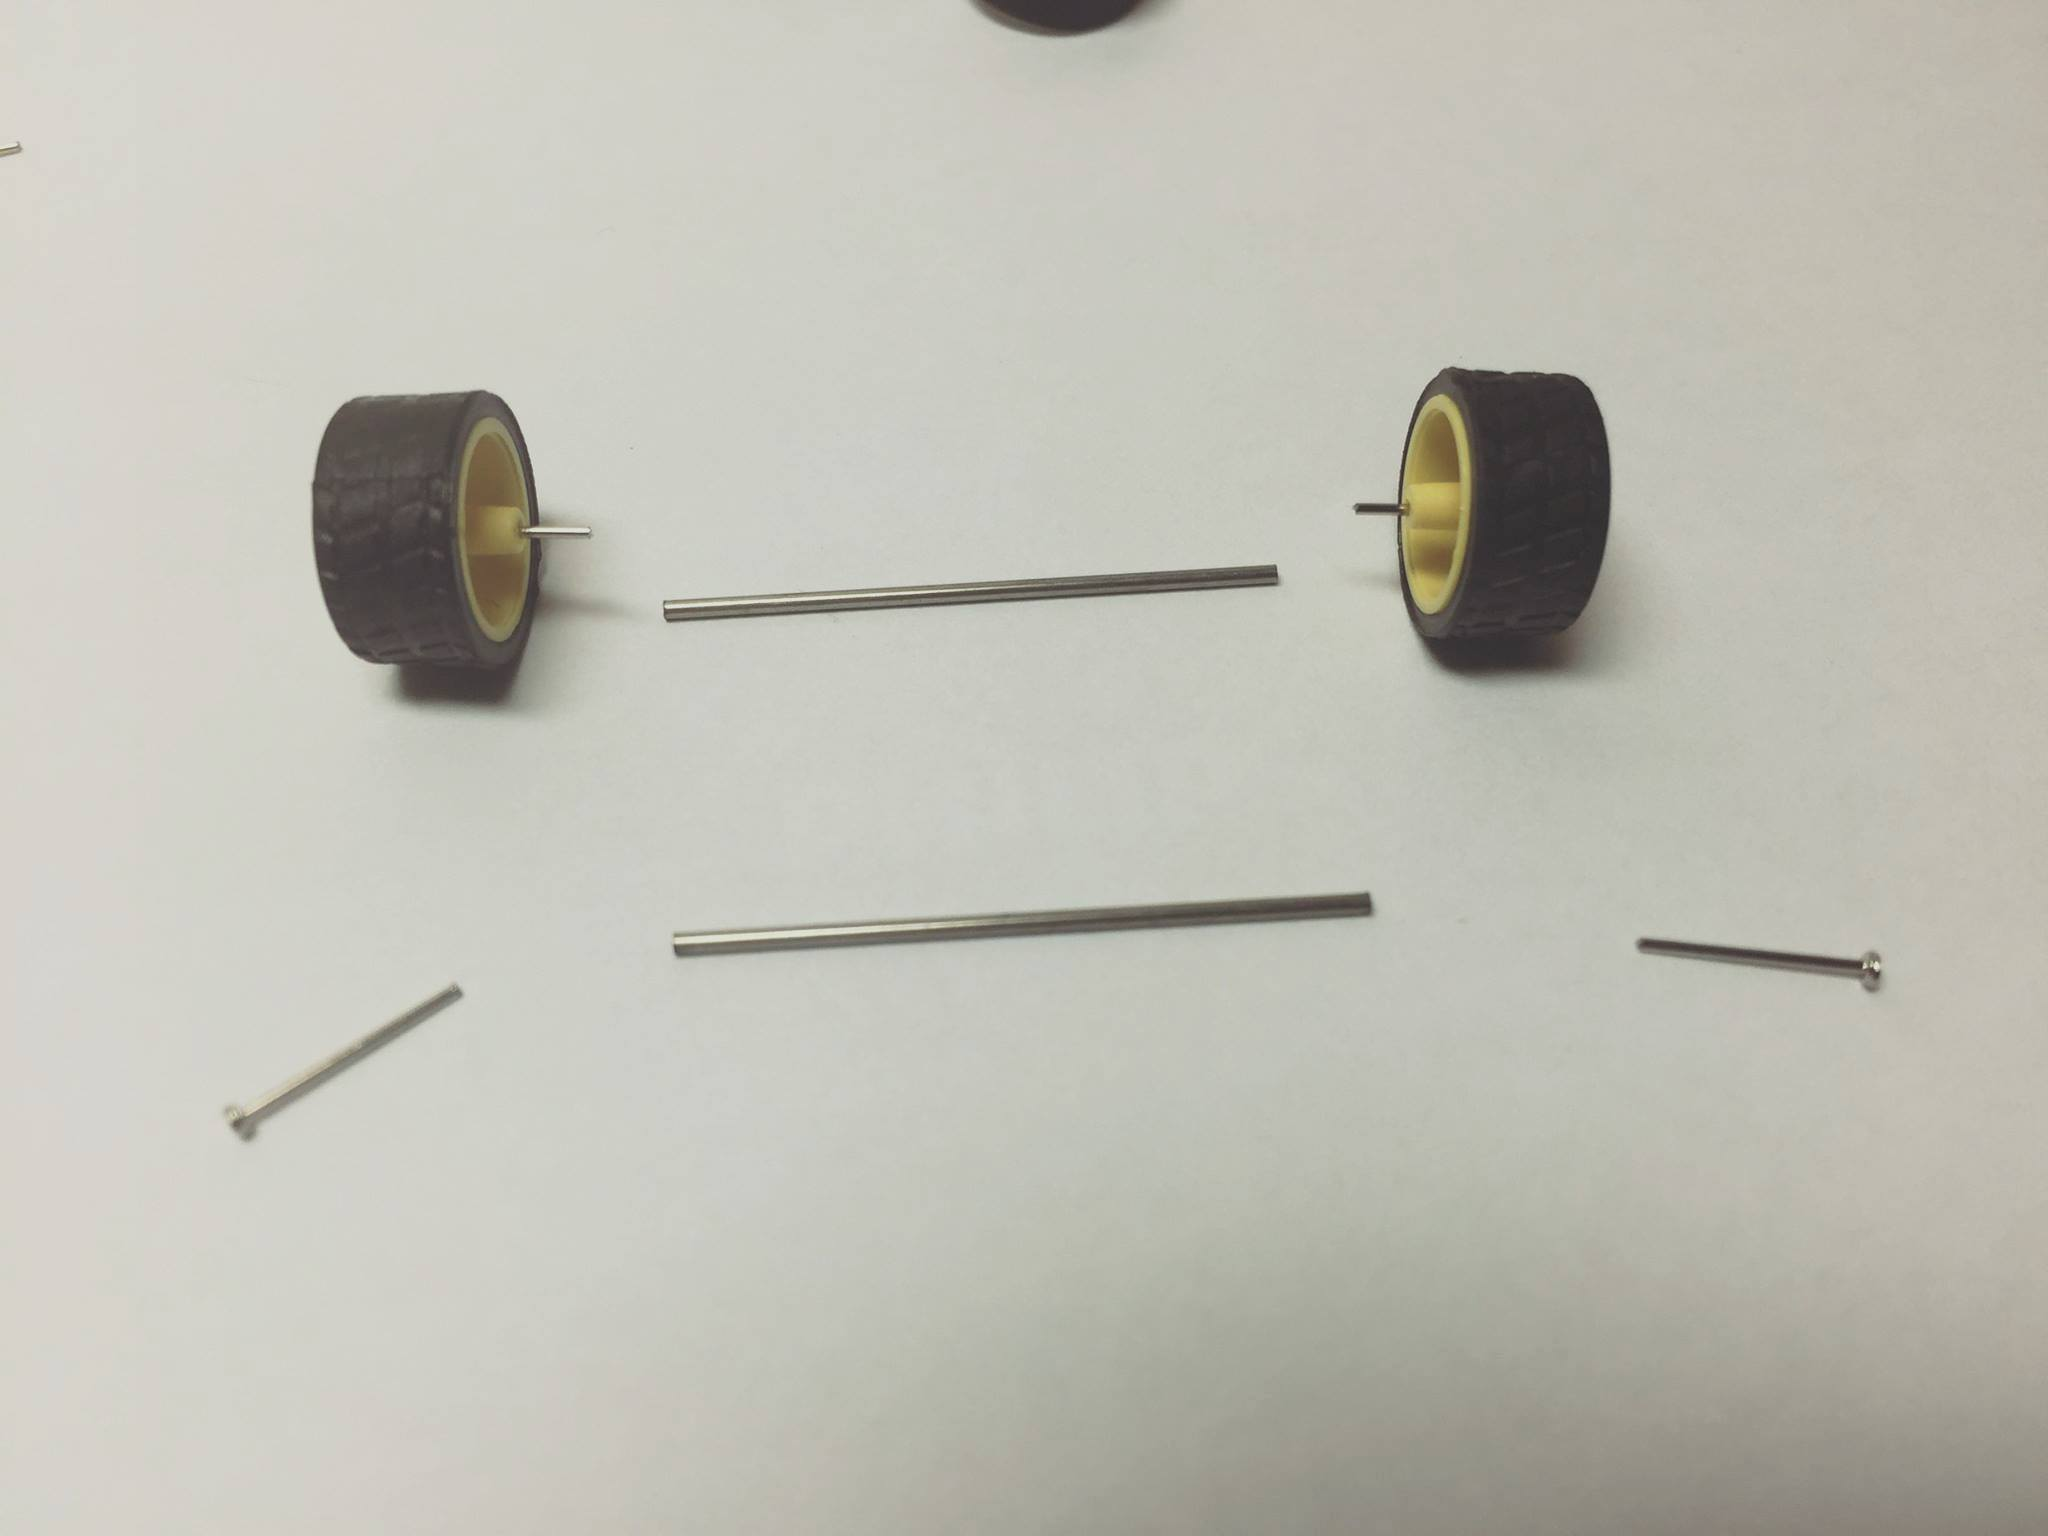 1/64 axles for hot wheels and diecast cars